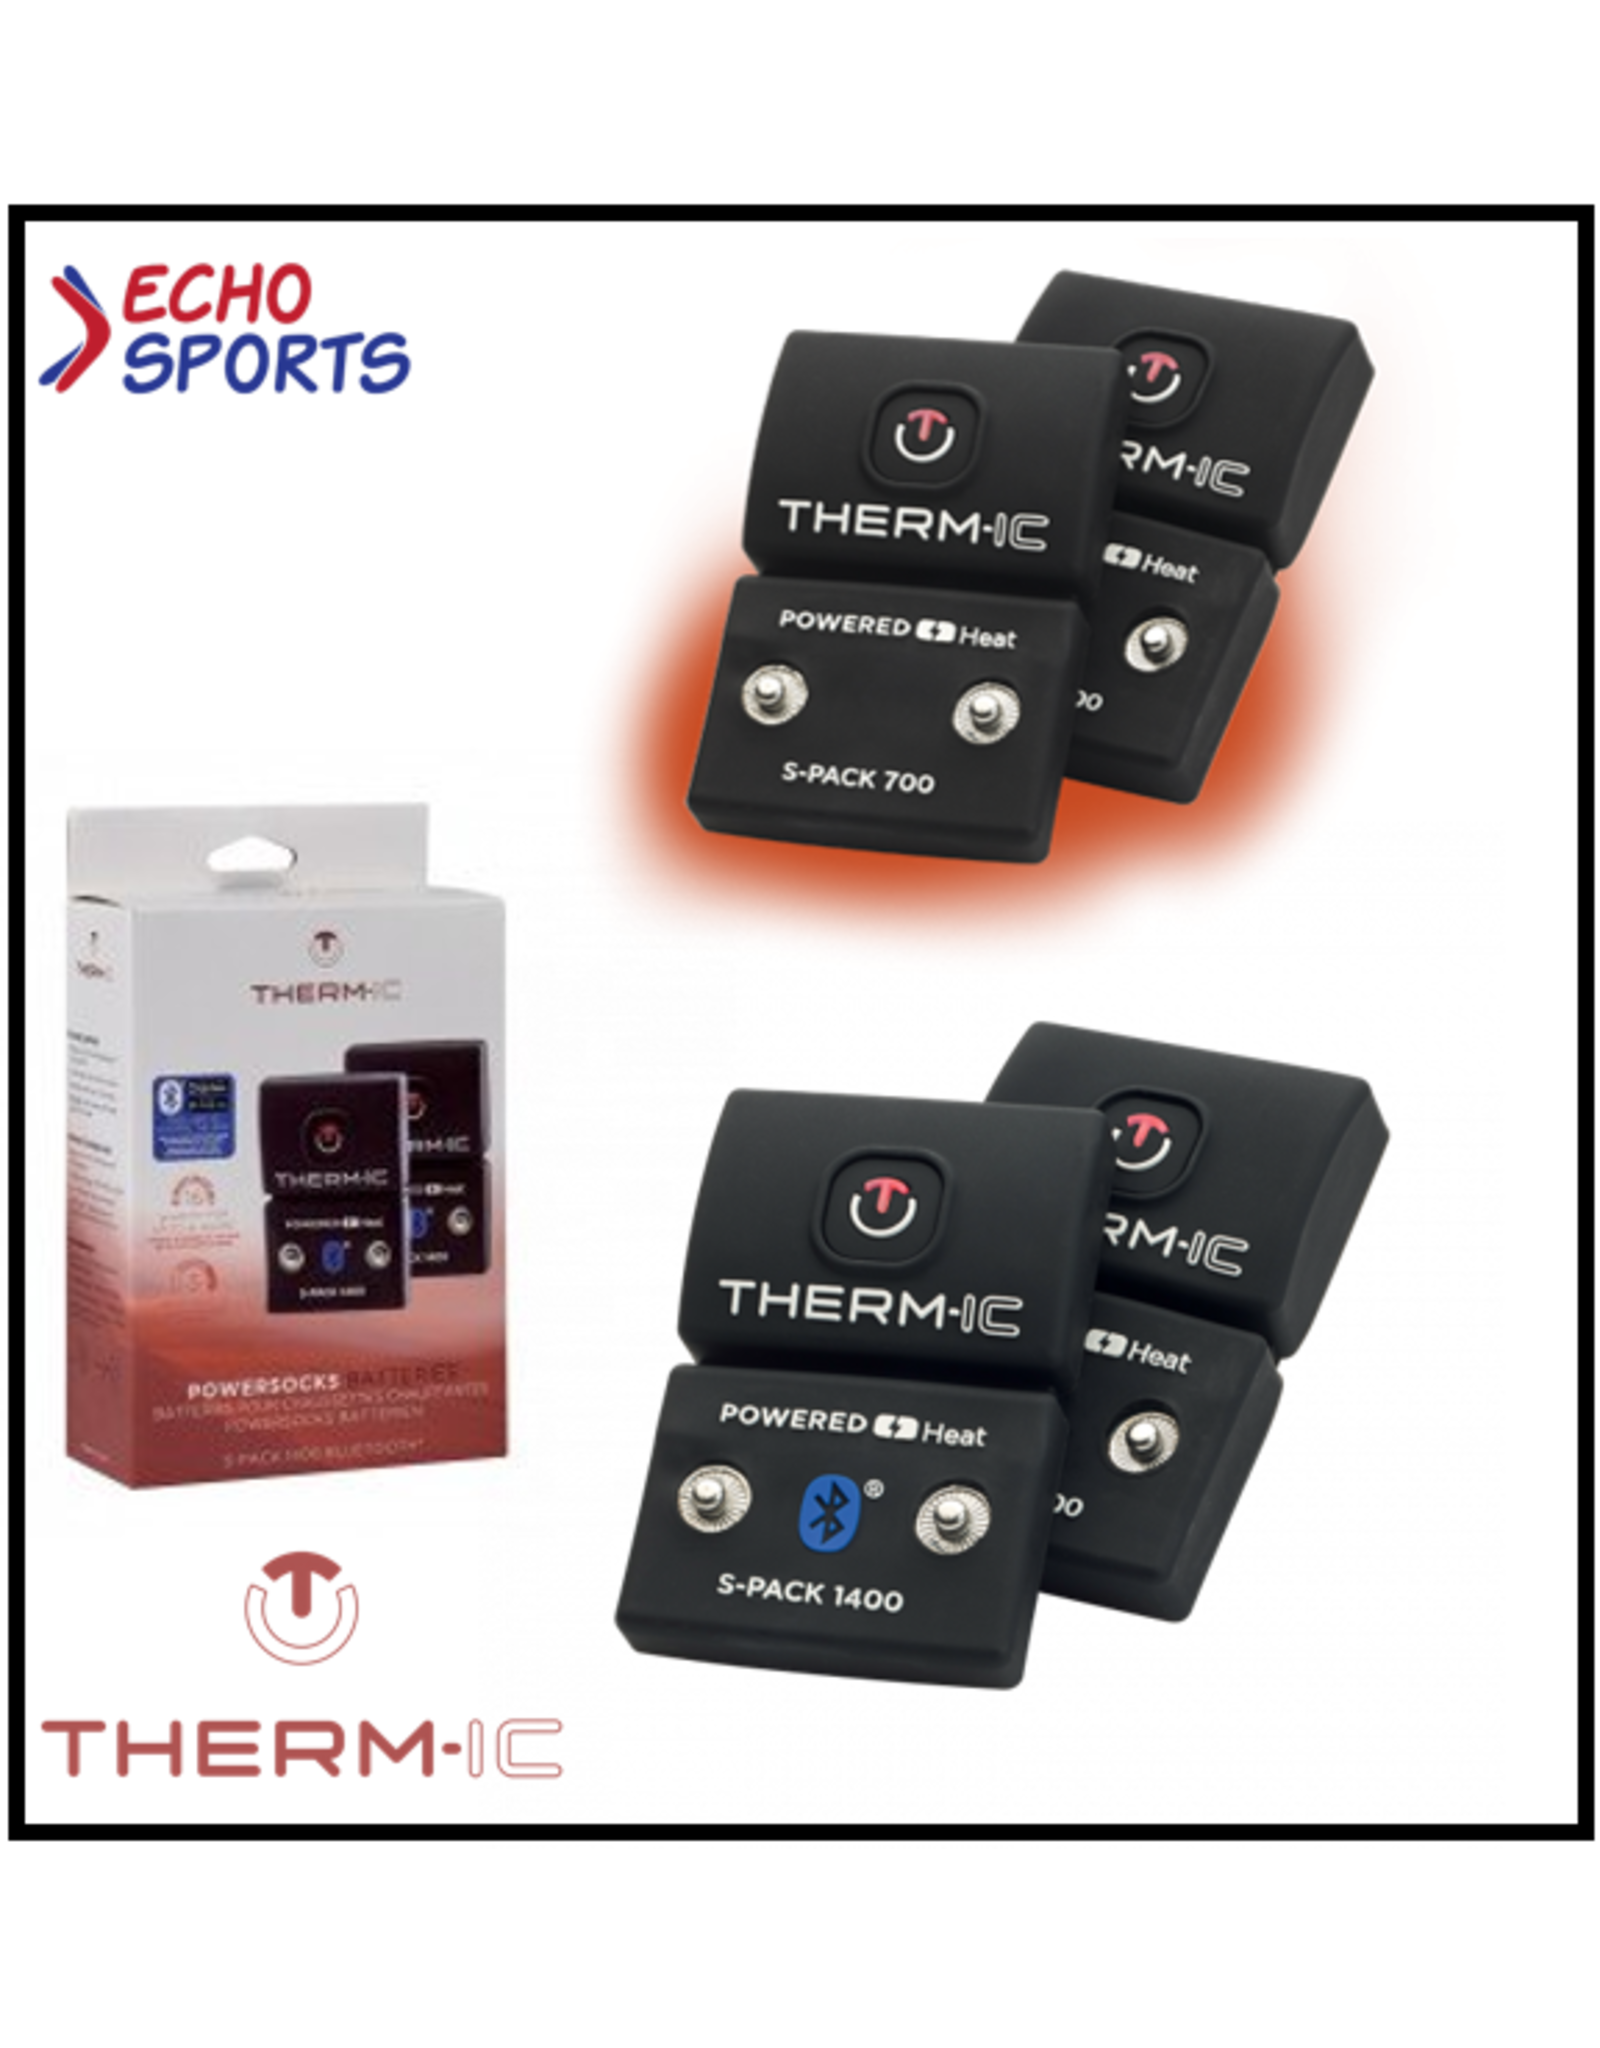 BATTERIE POUR CHAUSSETTES THERM-IC  S-PACK